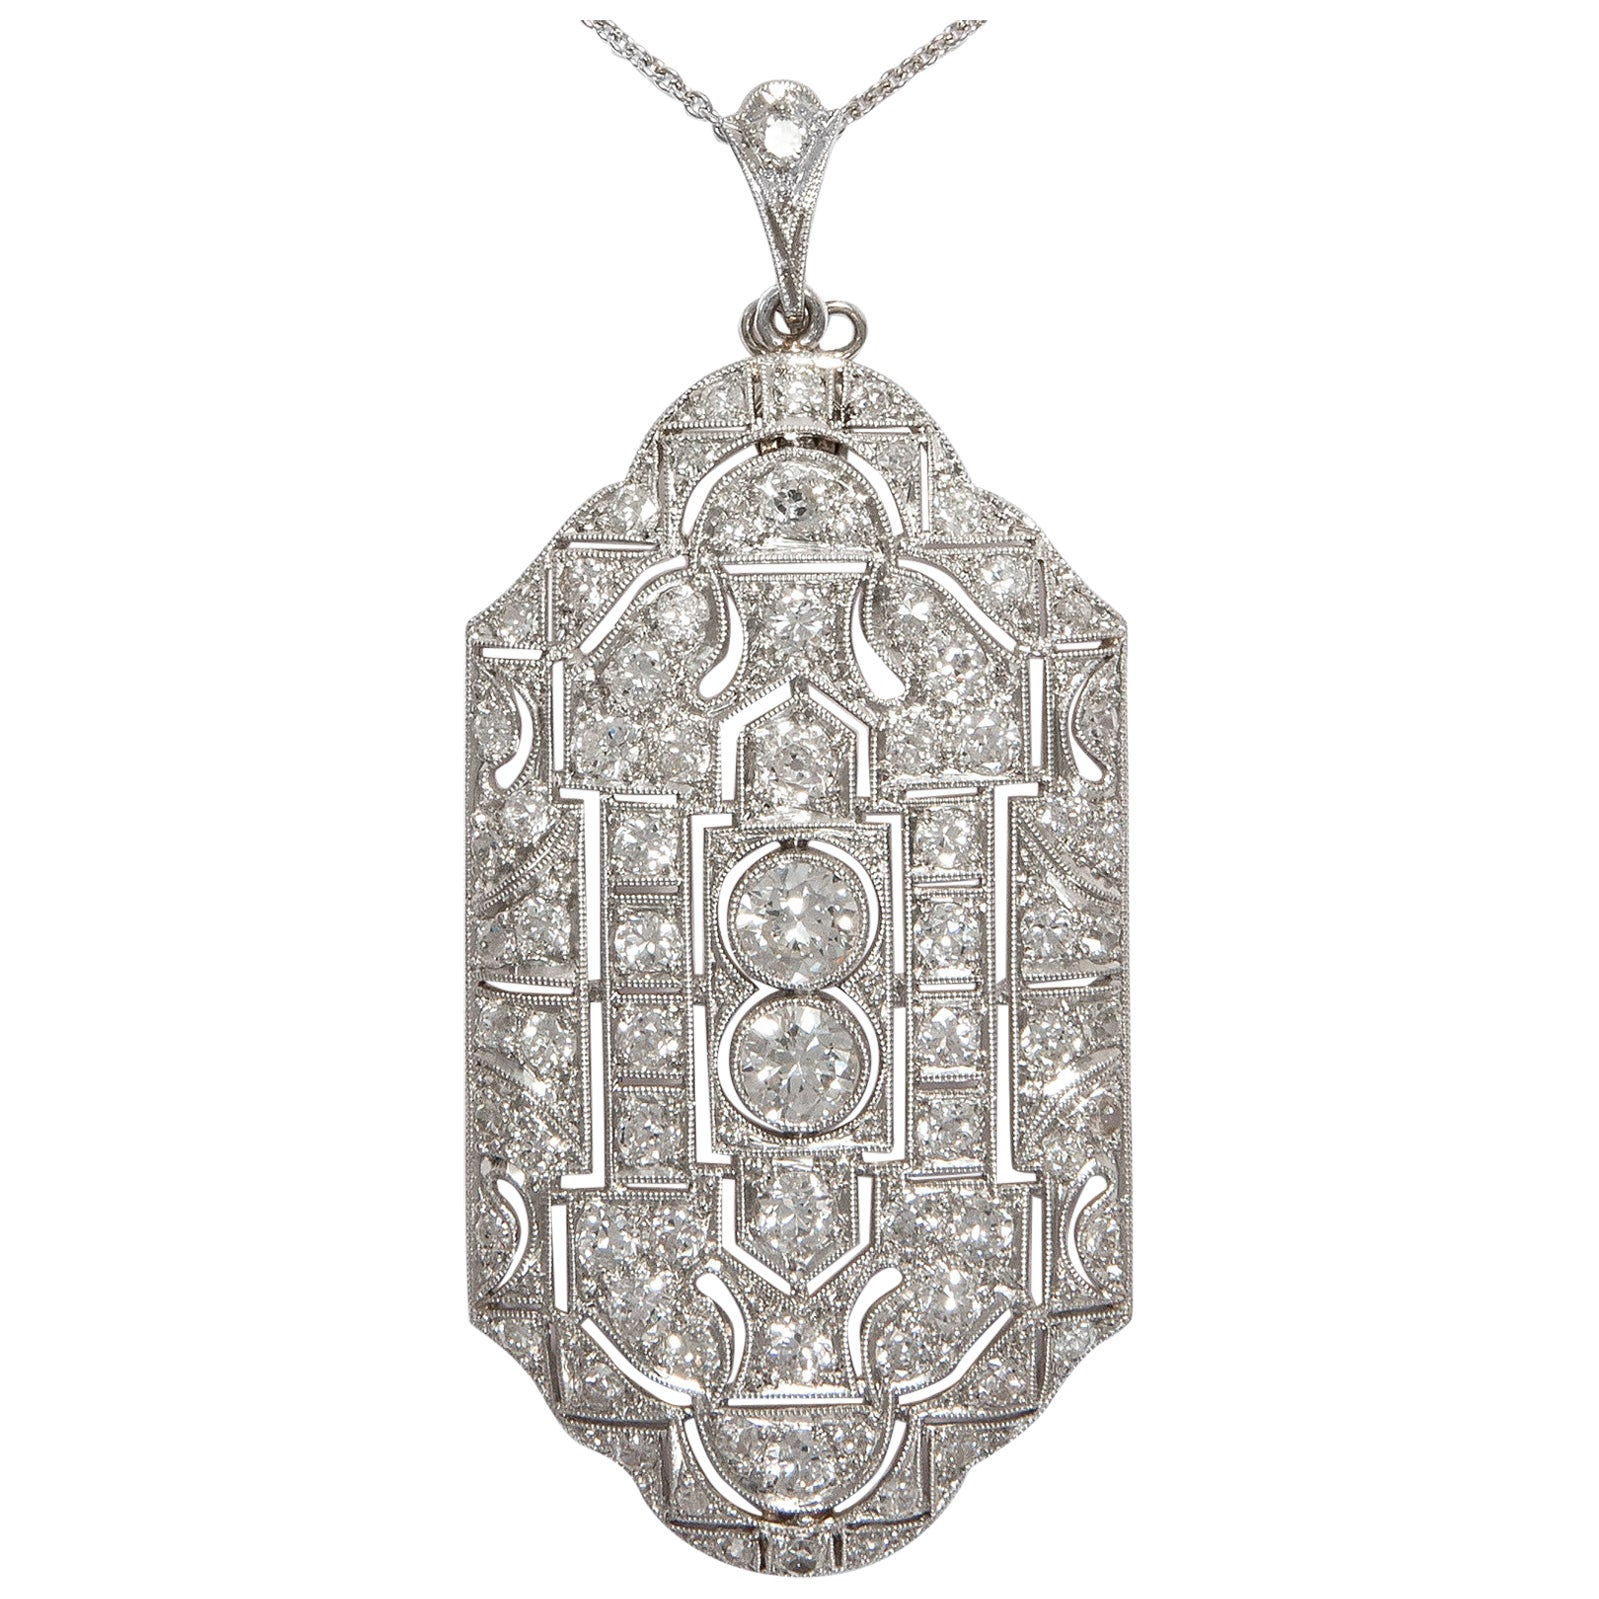 Antique Art Deco 1920s Certified 5.17 Carat Diamond Platinum Pendant Necklace